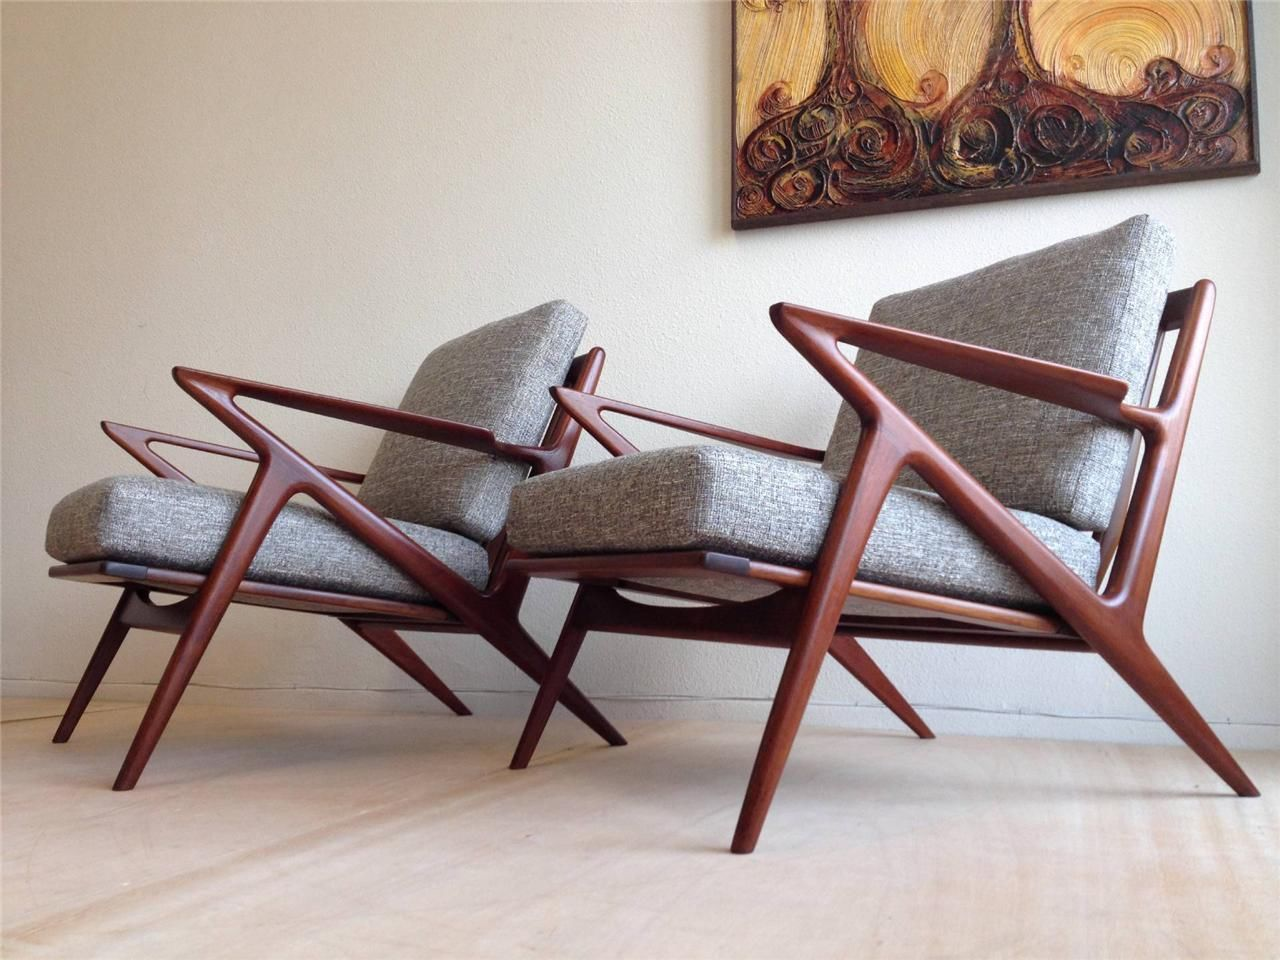 z chair mid century sofa and company pair of danish modern teak lounge chairs poul